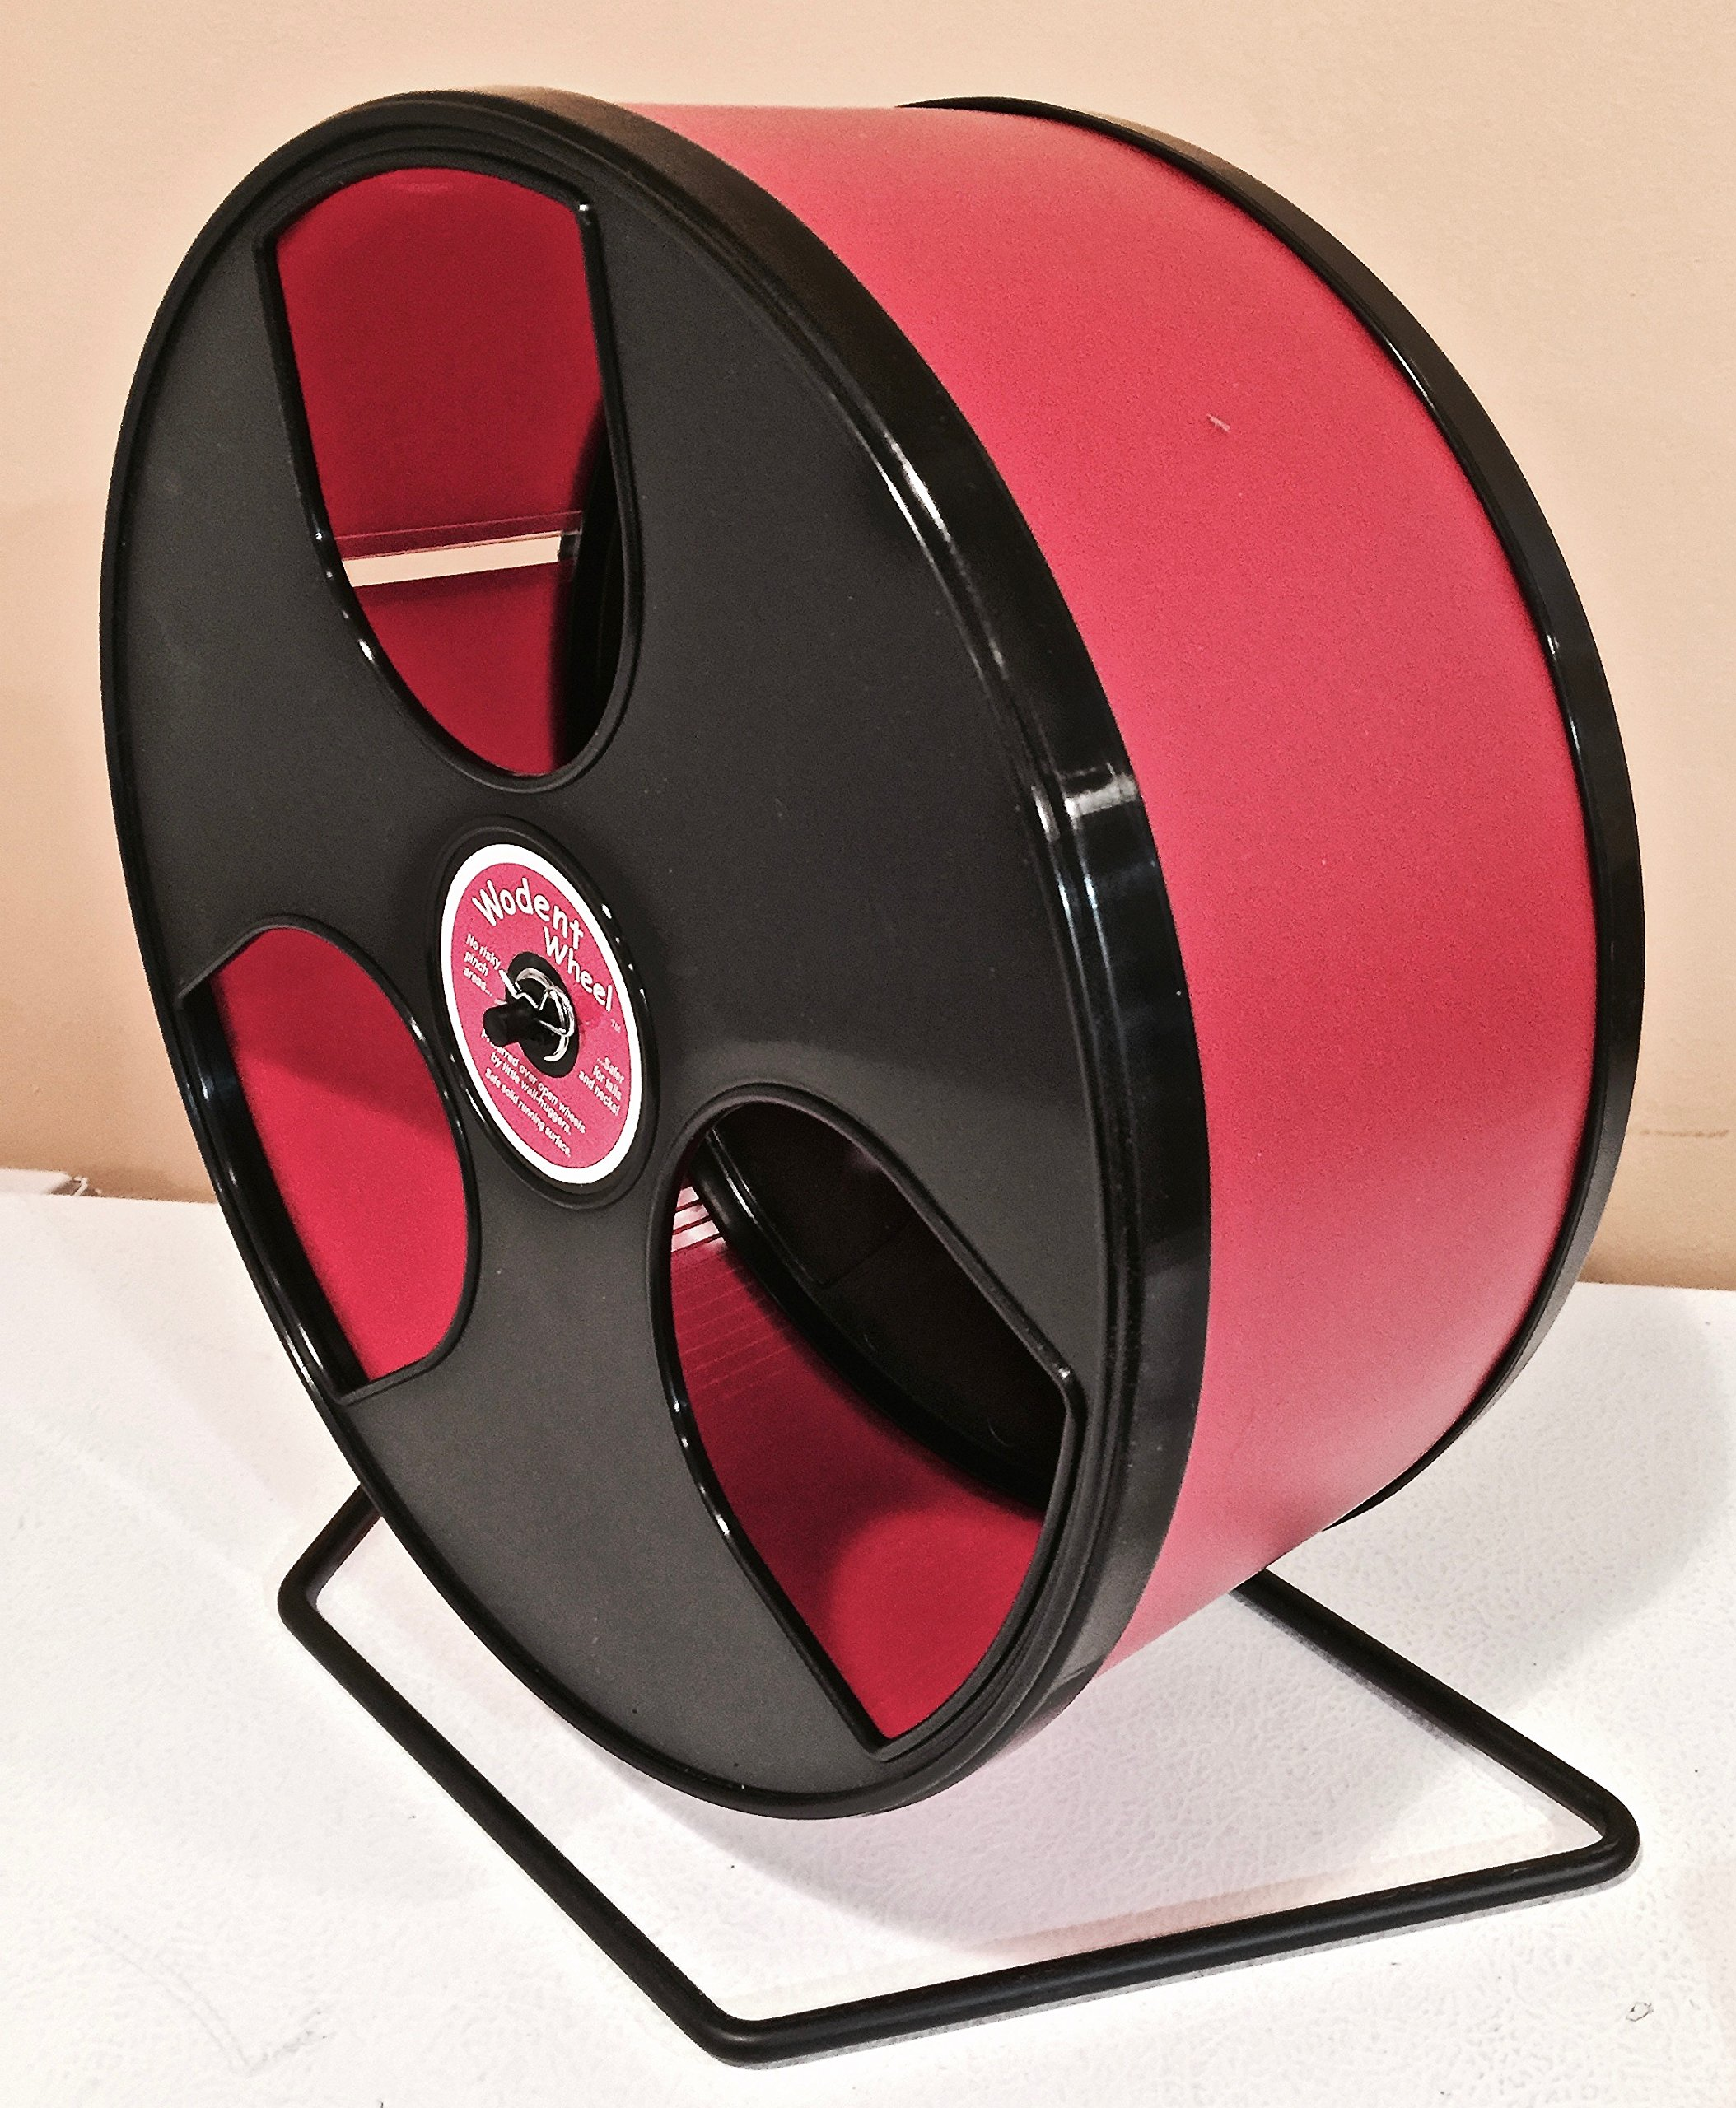 HEDGEHOG/CHINCHILLA EXERCISE WIDE TRACK 12'' WODENT WHEEL IN RED WITH BLACK PANELS